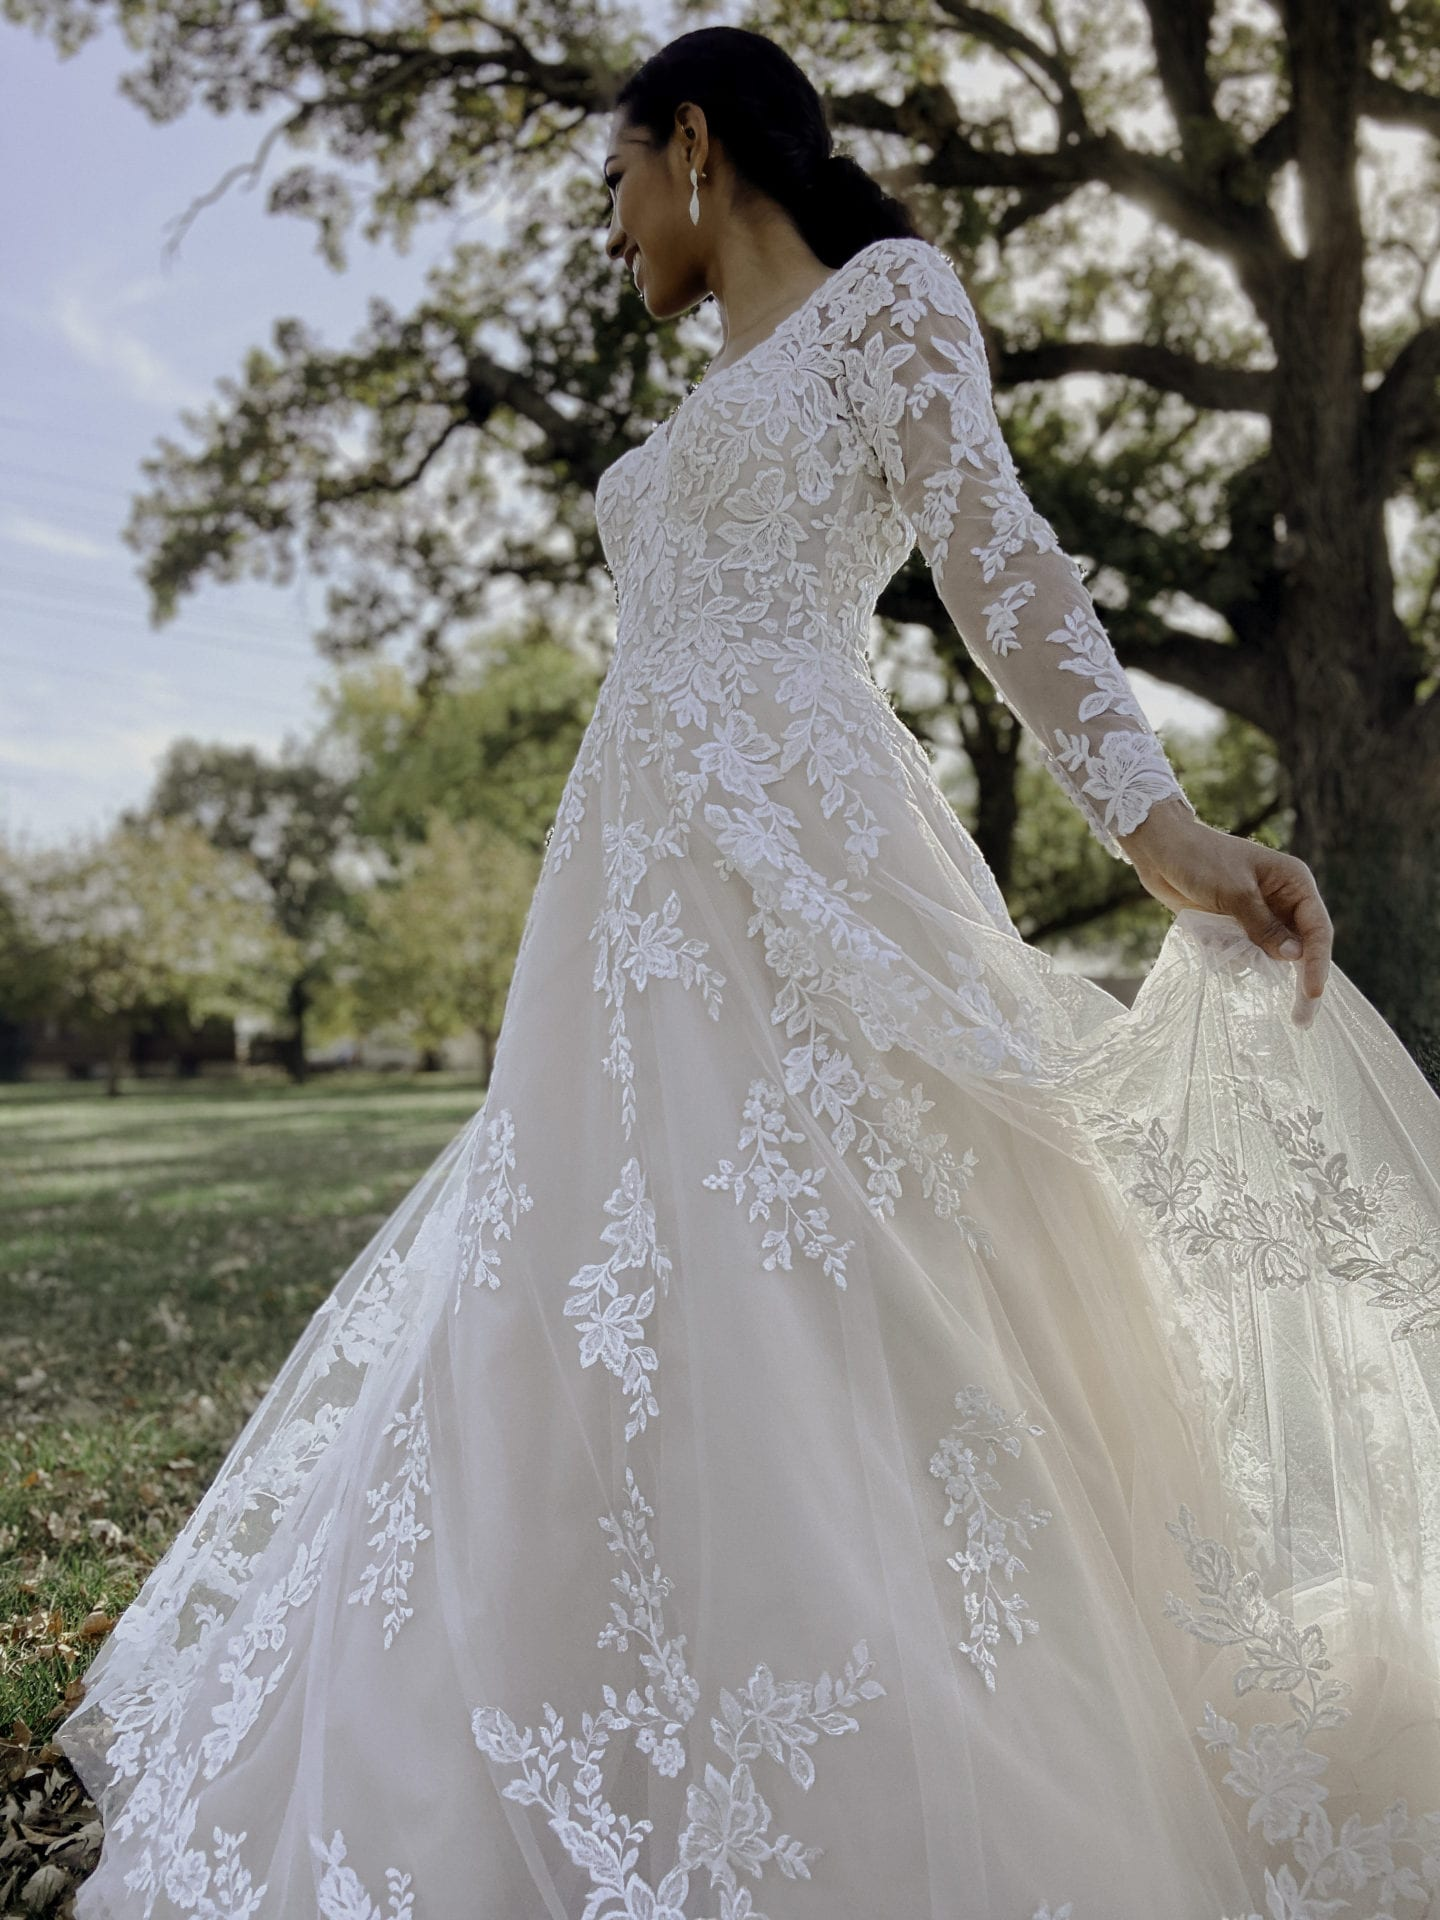 7169-Stella-York-Scarlett-Lace-Sleeved-Ballgown-Wedding-Dress-Brisbane